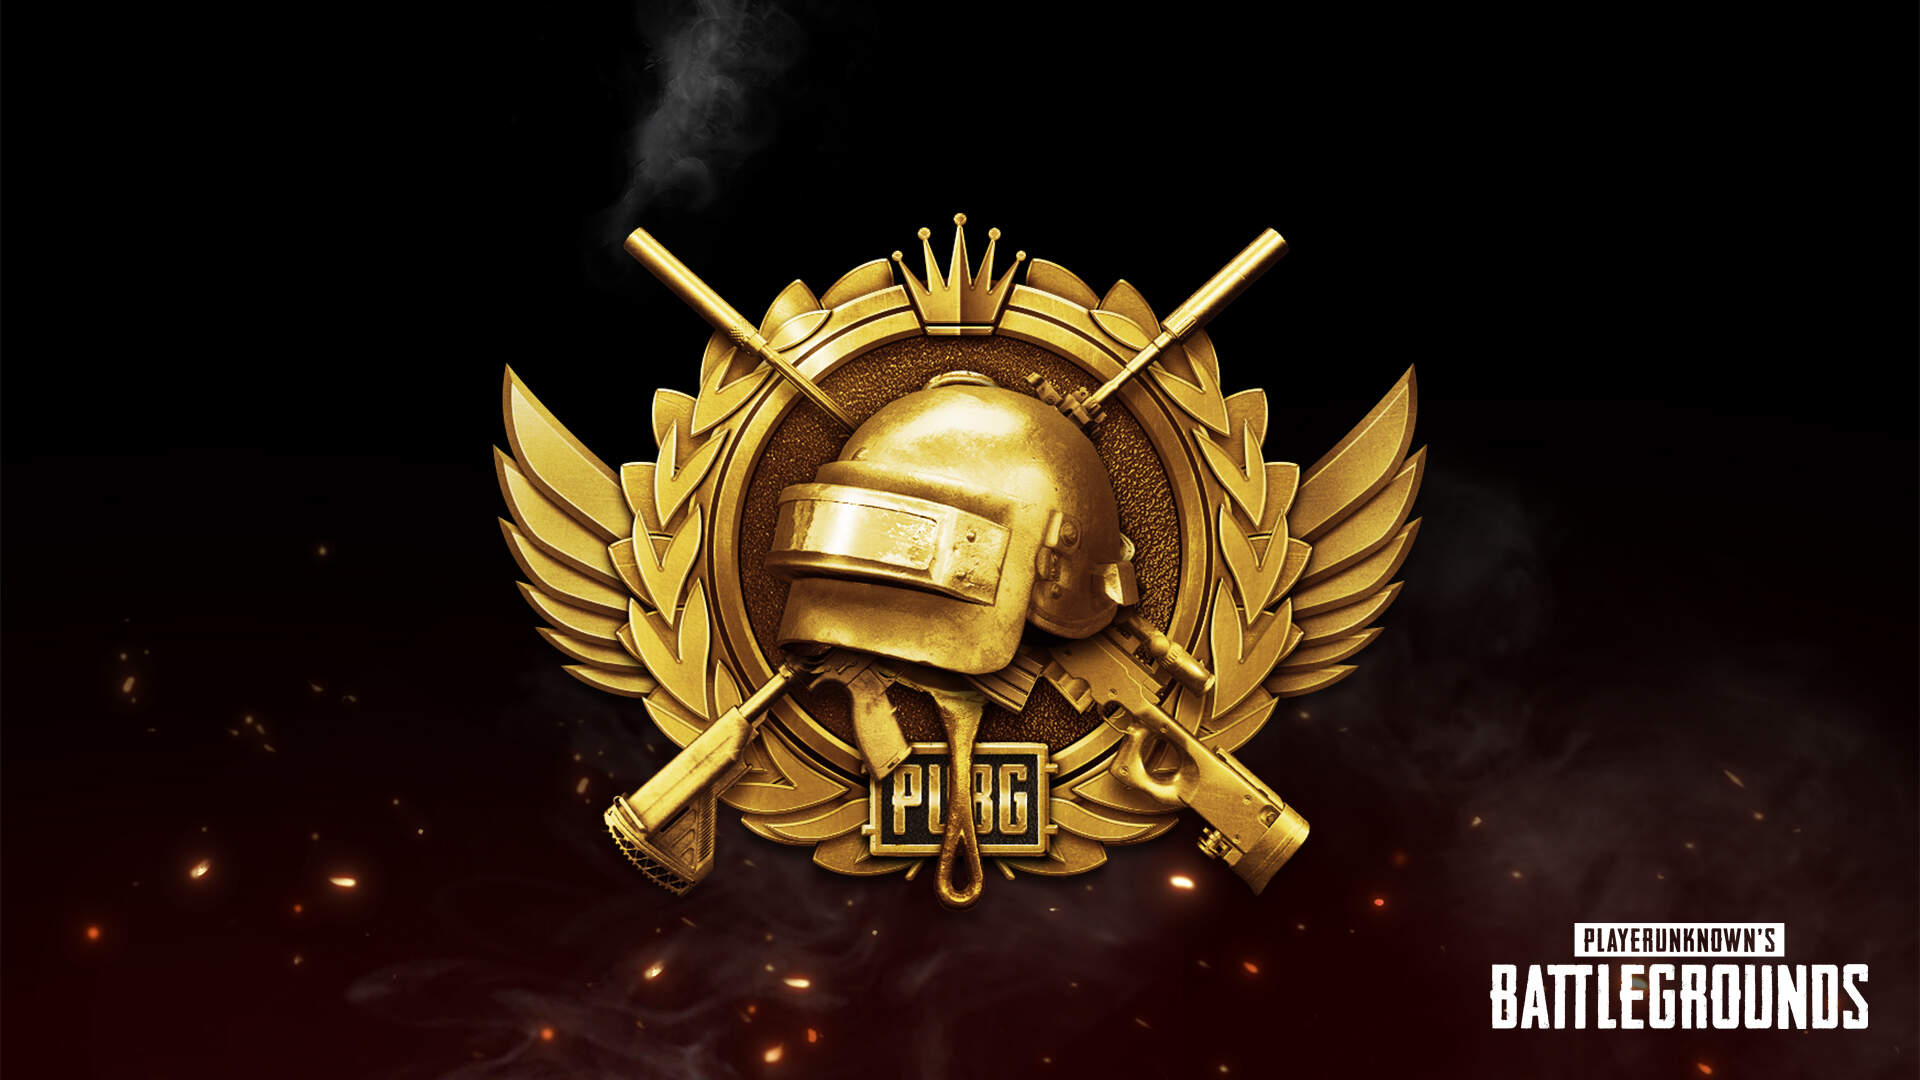 PUBG Update 22 Introduces Rankings, Map Selection, and Region Locks